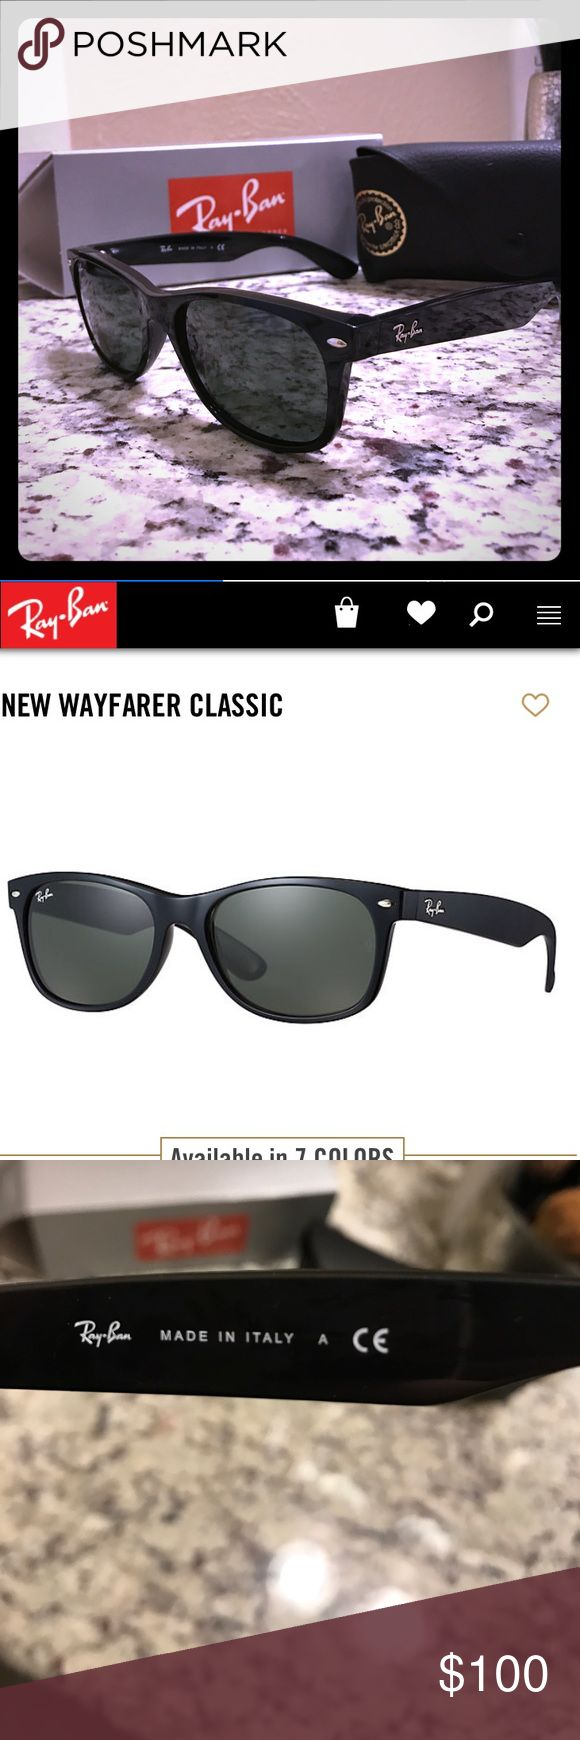 do ray ban prescription glasses come with a case  ray ban wayfarer sunglasses never worn. these were a present that sadly do not fit